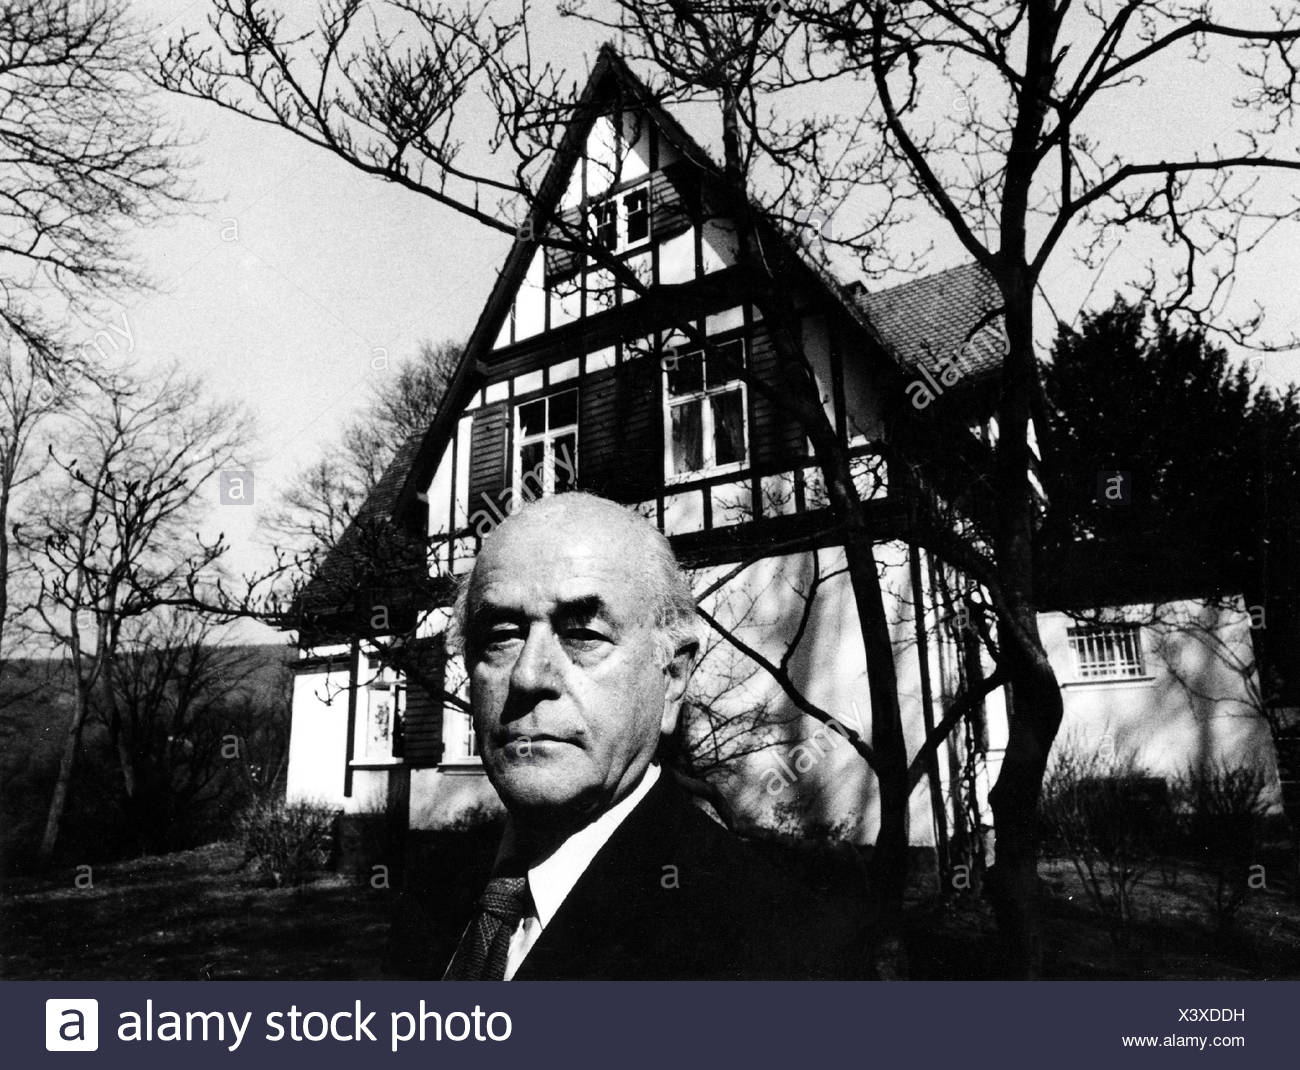 albert speer essay 3 Browse through critical essays on thousands of literary works to find resources for school projects and papers.